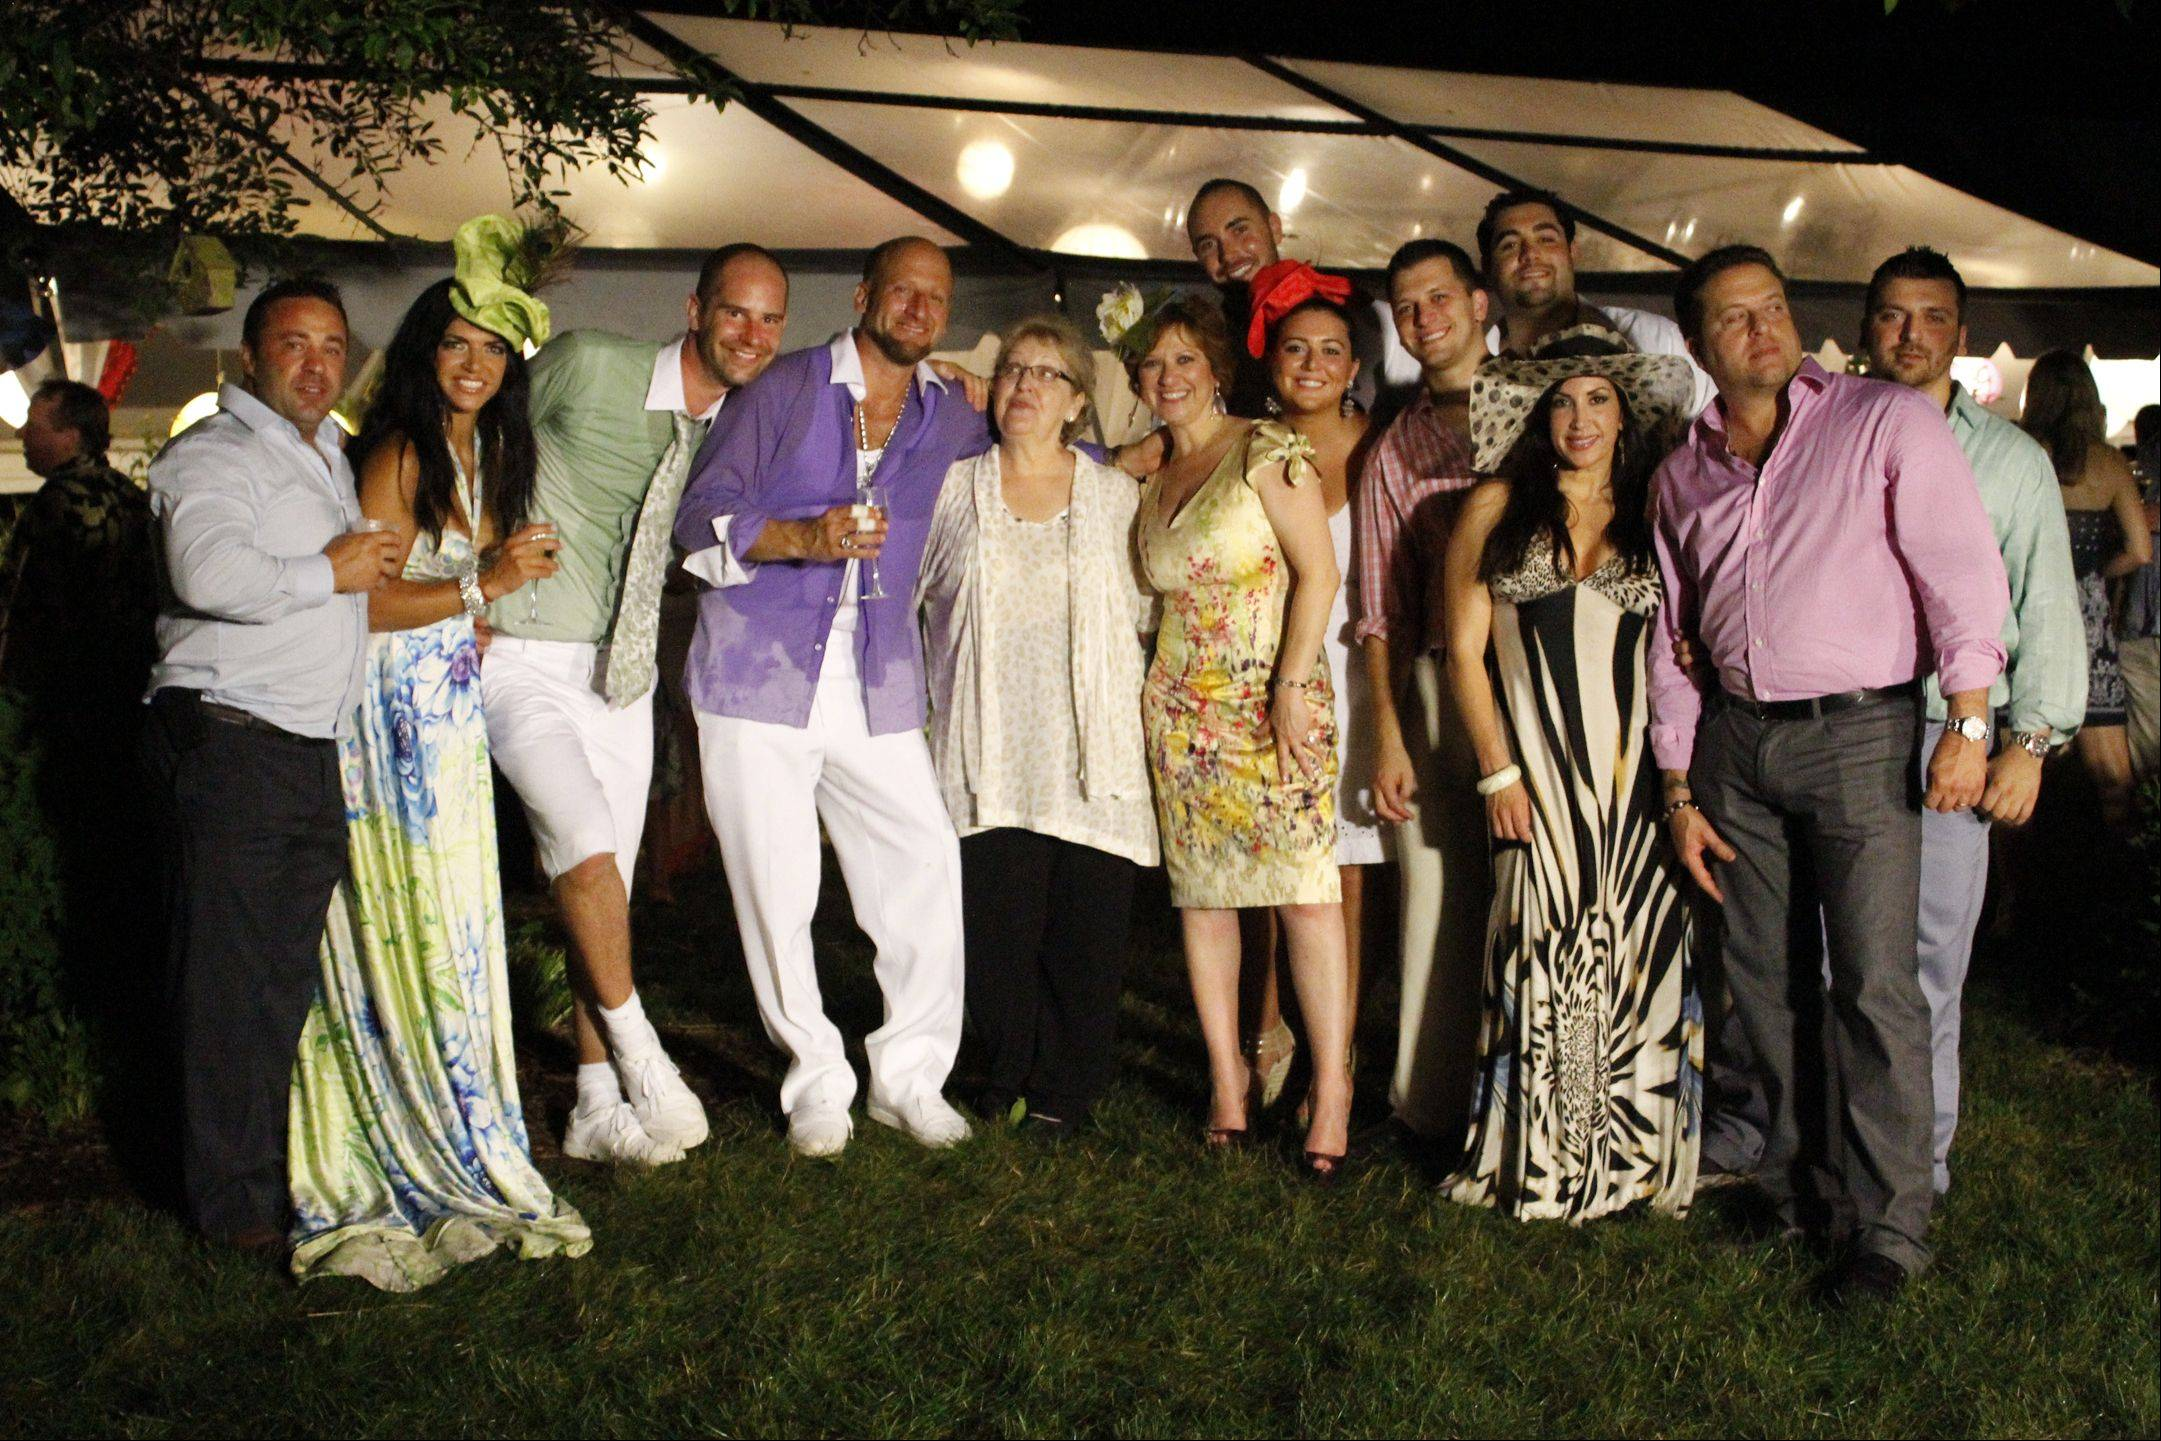 "Rich Lane and Jaime Laurita pose with the cast of ""The Real Housewives of New Jersey"" during the reception at their civil union ceremony, which will be featured on the next two episodes of the Bravo TV show."